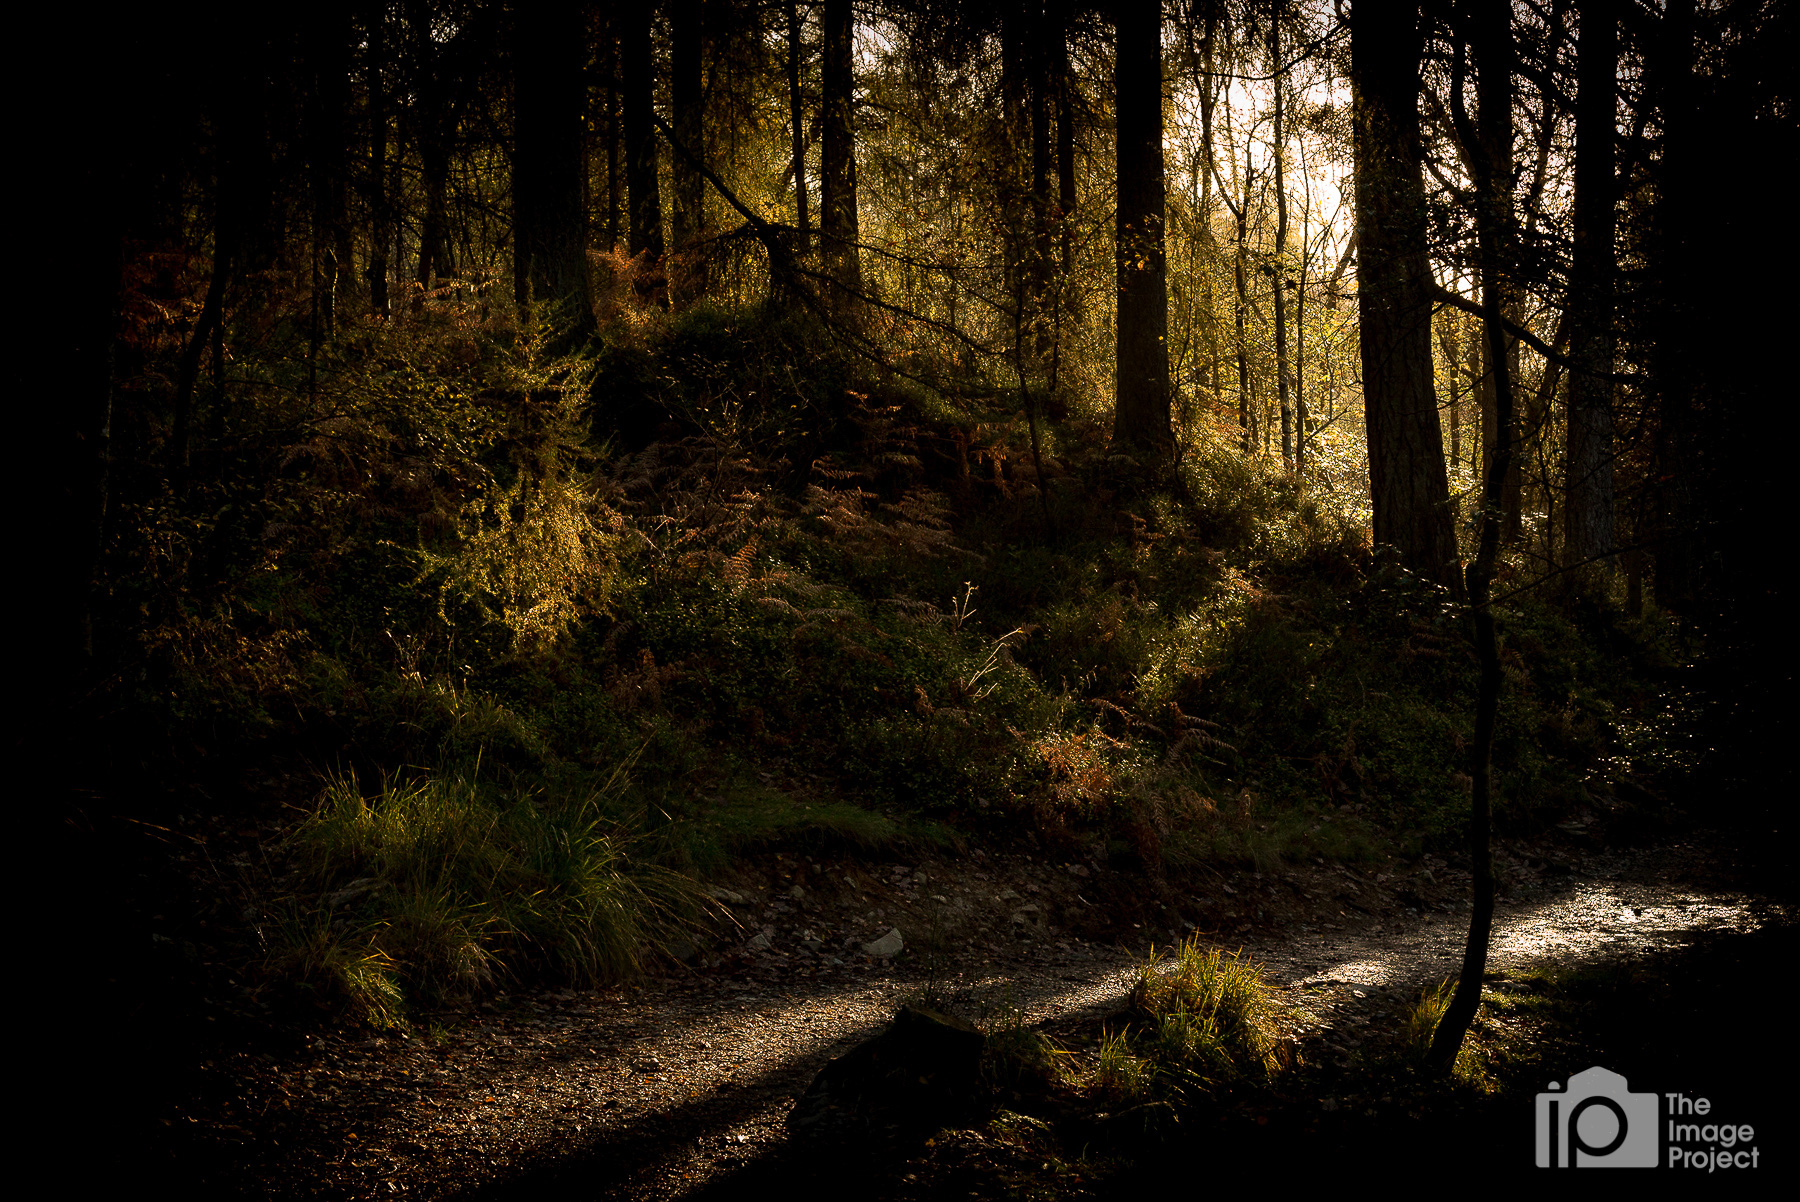 Morning sun finds its way through the forest